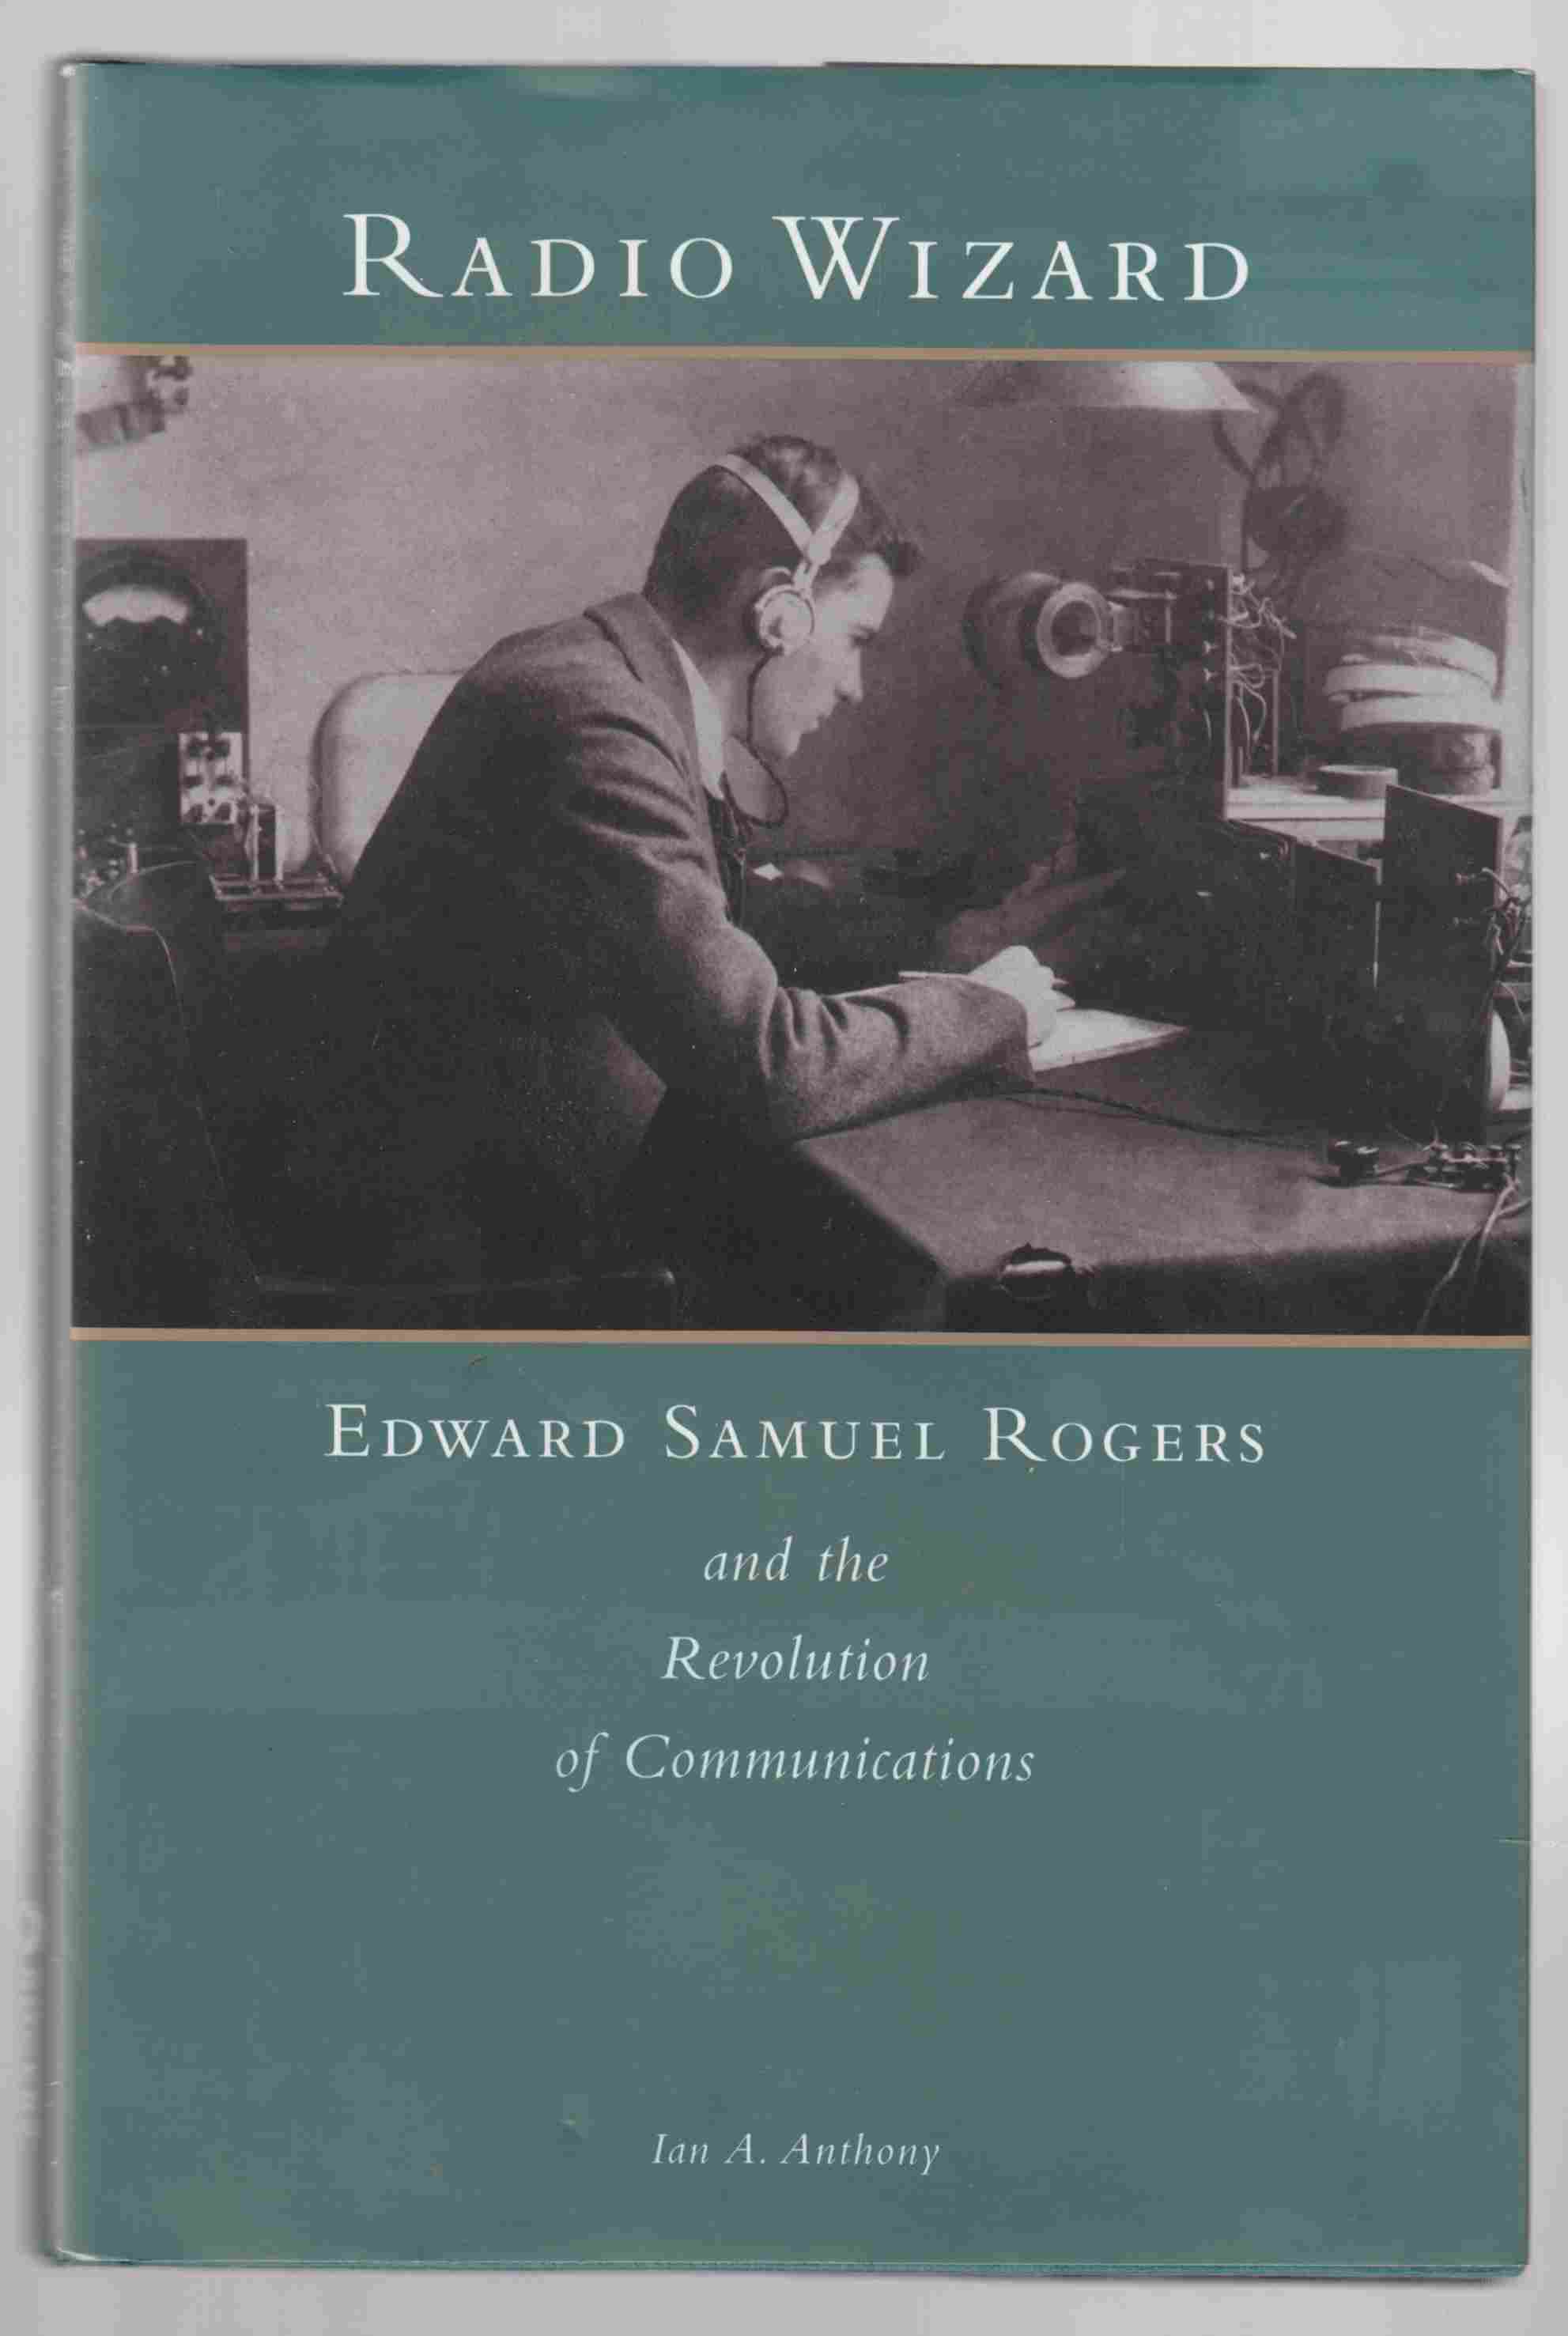 Image for Radio Wizard: Edward Samuel Rogers and the Revolution of Communication